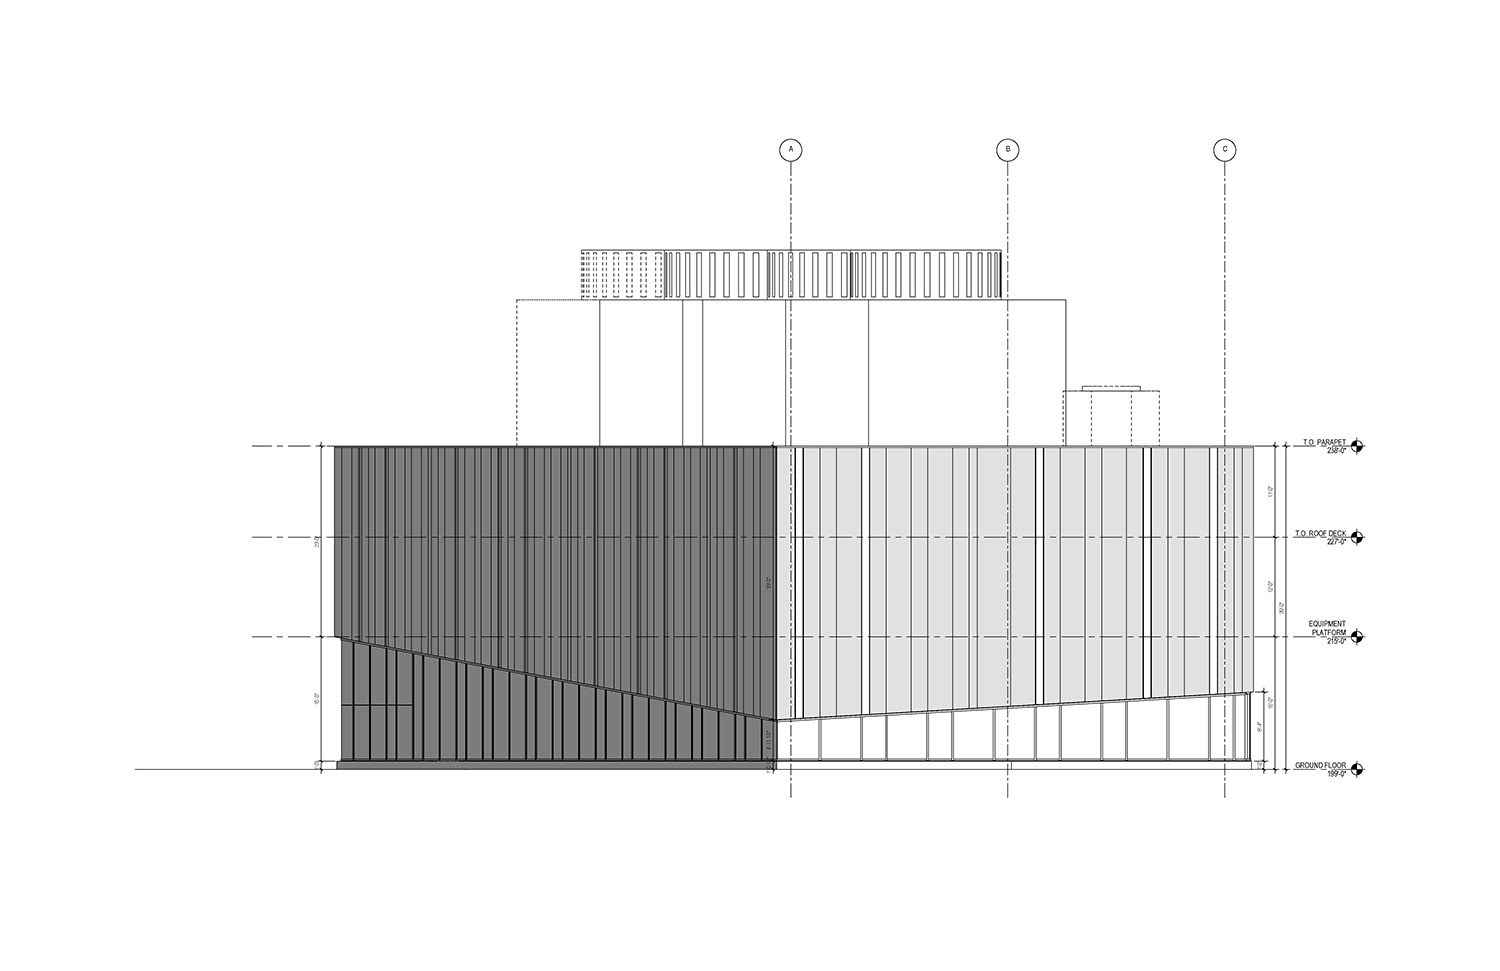 South Elevation of the UMass Amherst North Chiller Plant Leers Weinzapfel Associates}